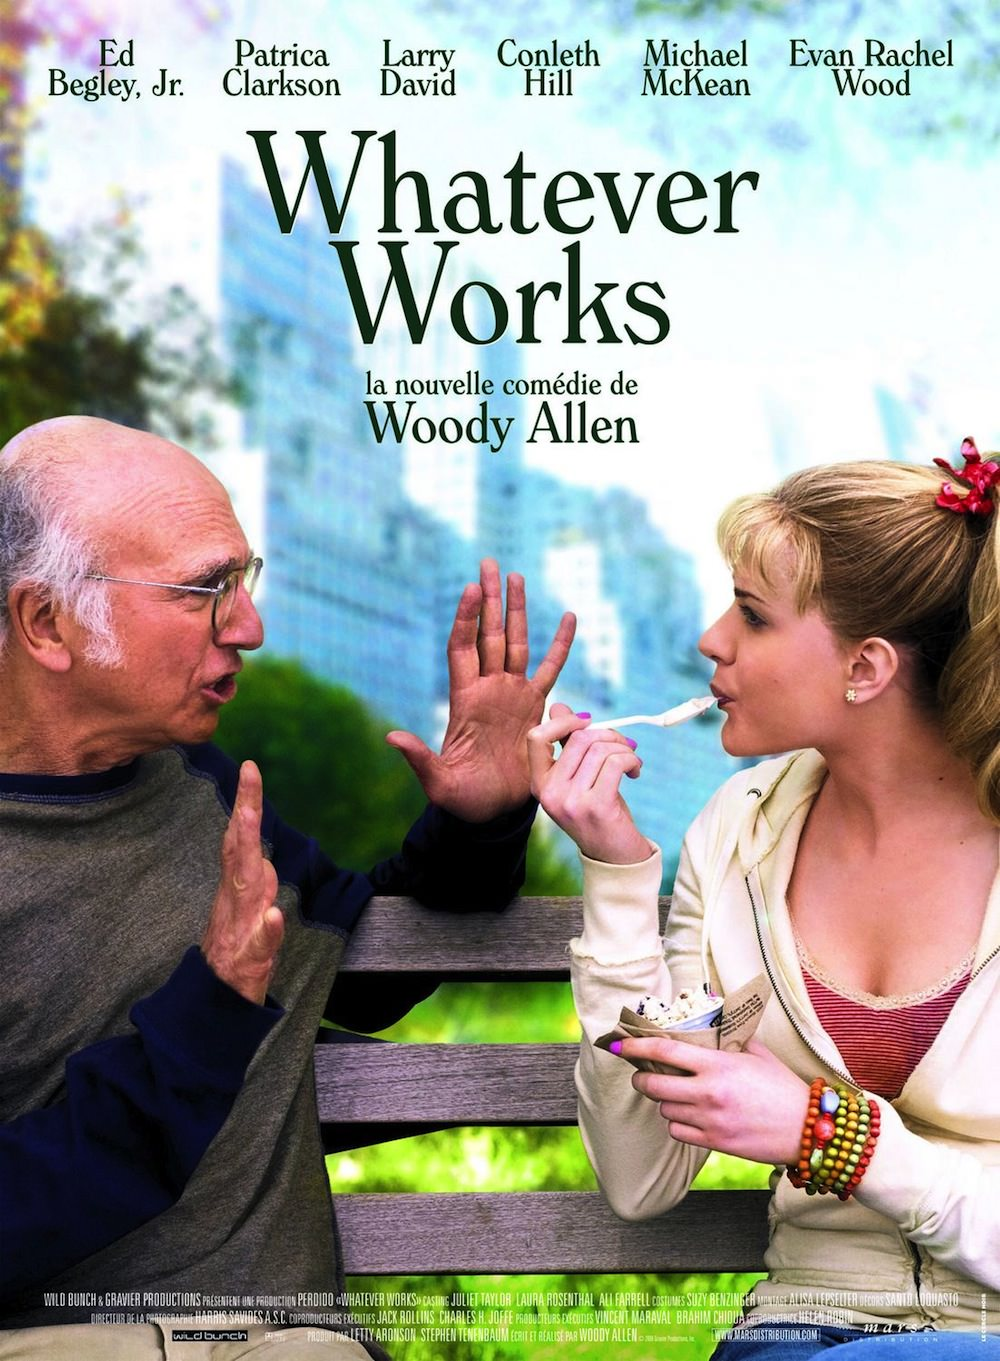 whatever-works-woody-allen